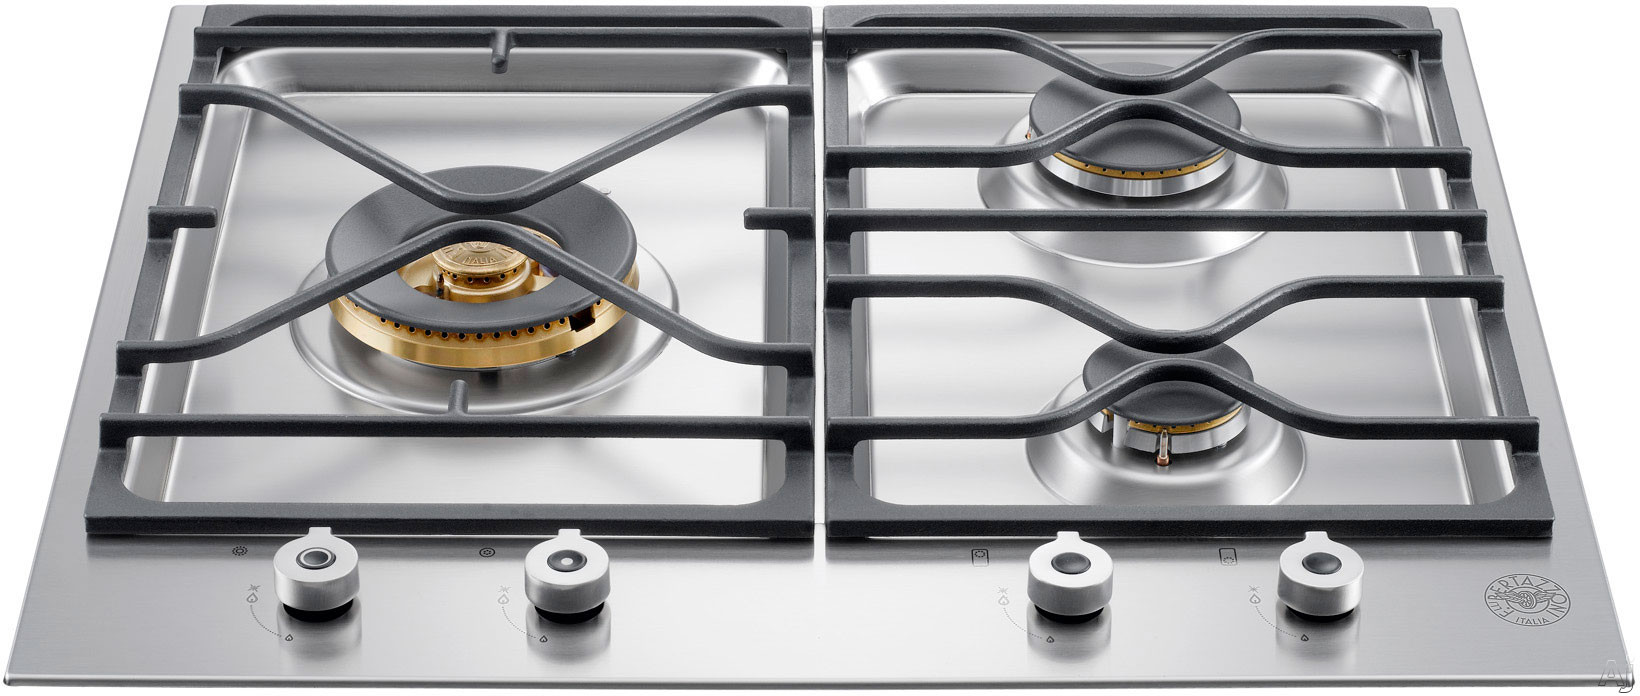 Bertazzoni Professional Series PMB24300X 24 Inch Gas Cooktop with 3 Sealed Brass Burners, 18,000 BTU Power Burner, Cast Iron Continuous Grates, One Hand Ignition and Front-Mounted Solid Metal Knobs: Natural Gas